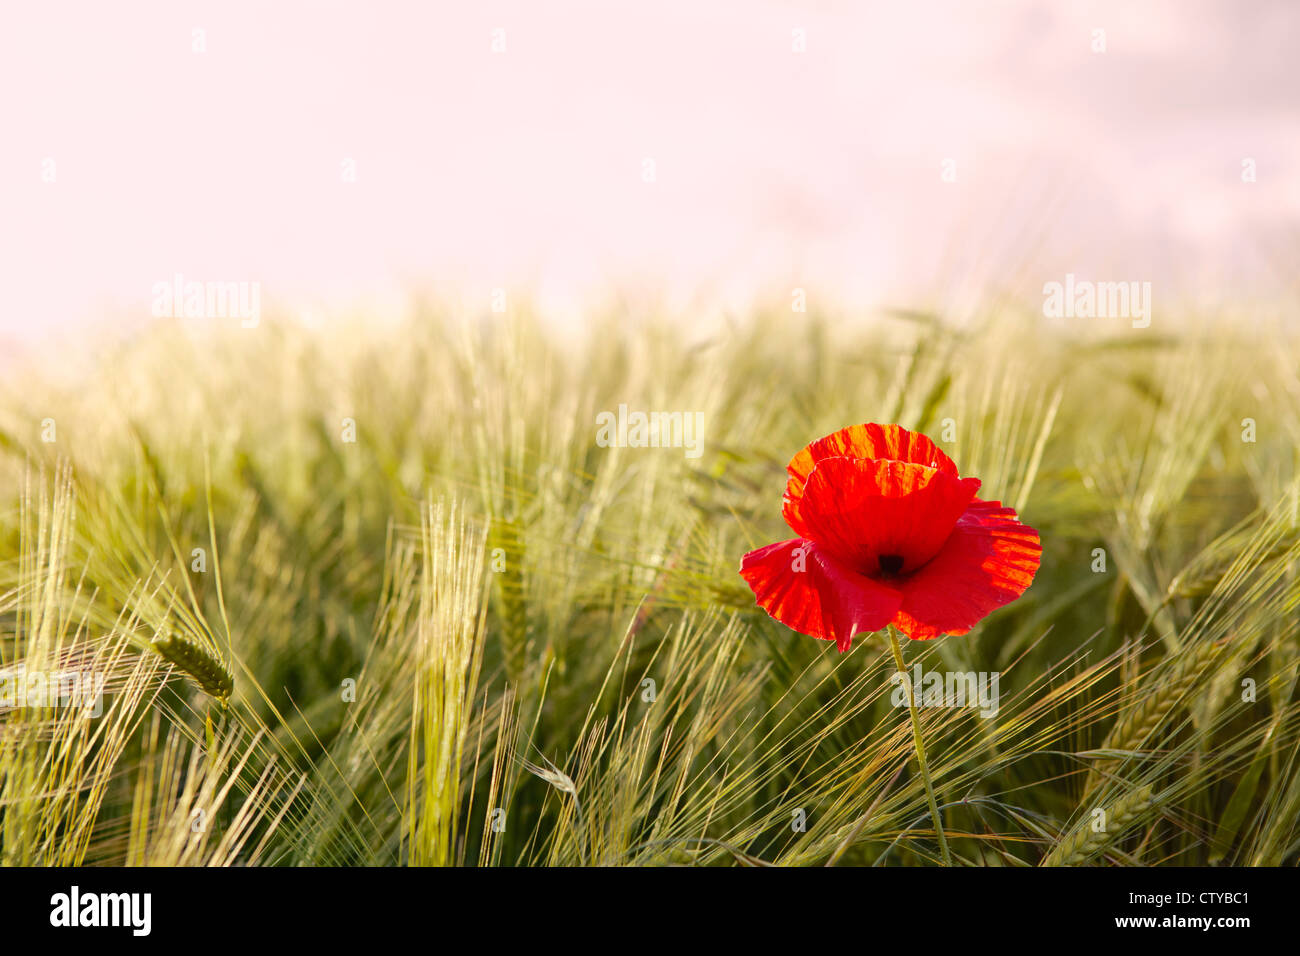 Poppies in Barley Field Photo Stock